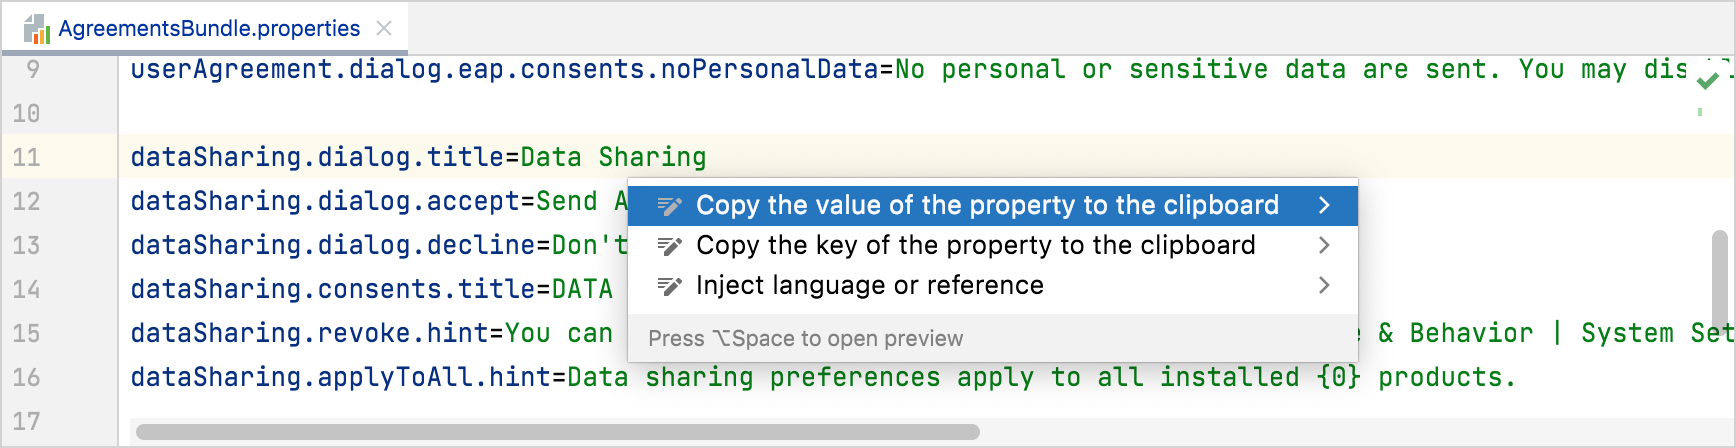 Context actions to copy the key and value of a property